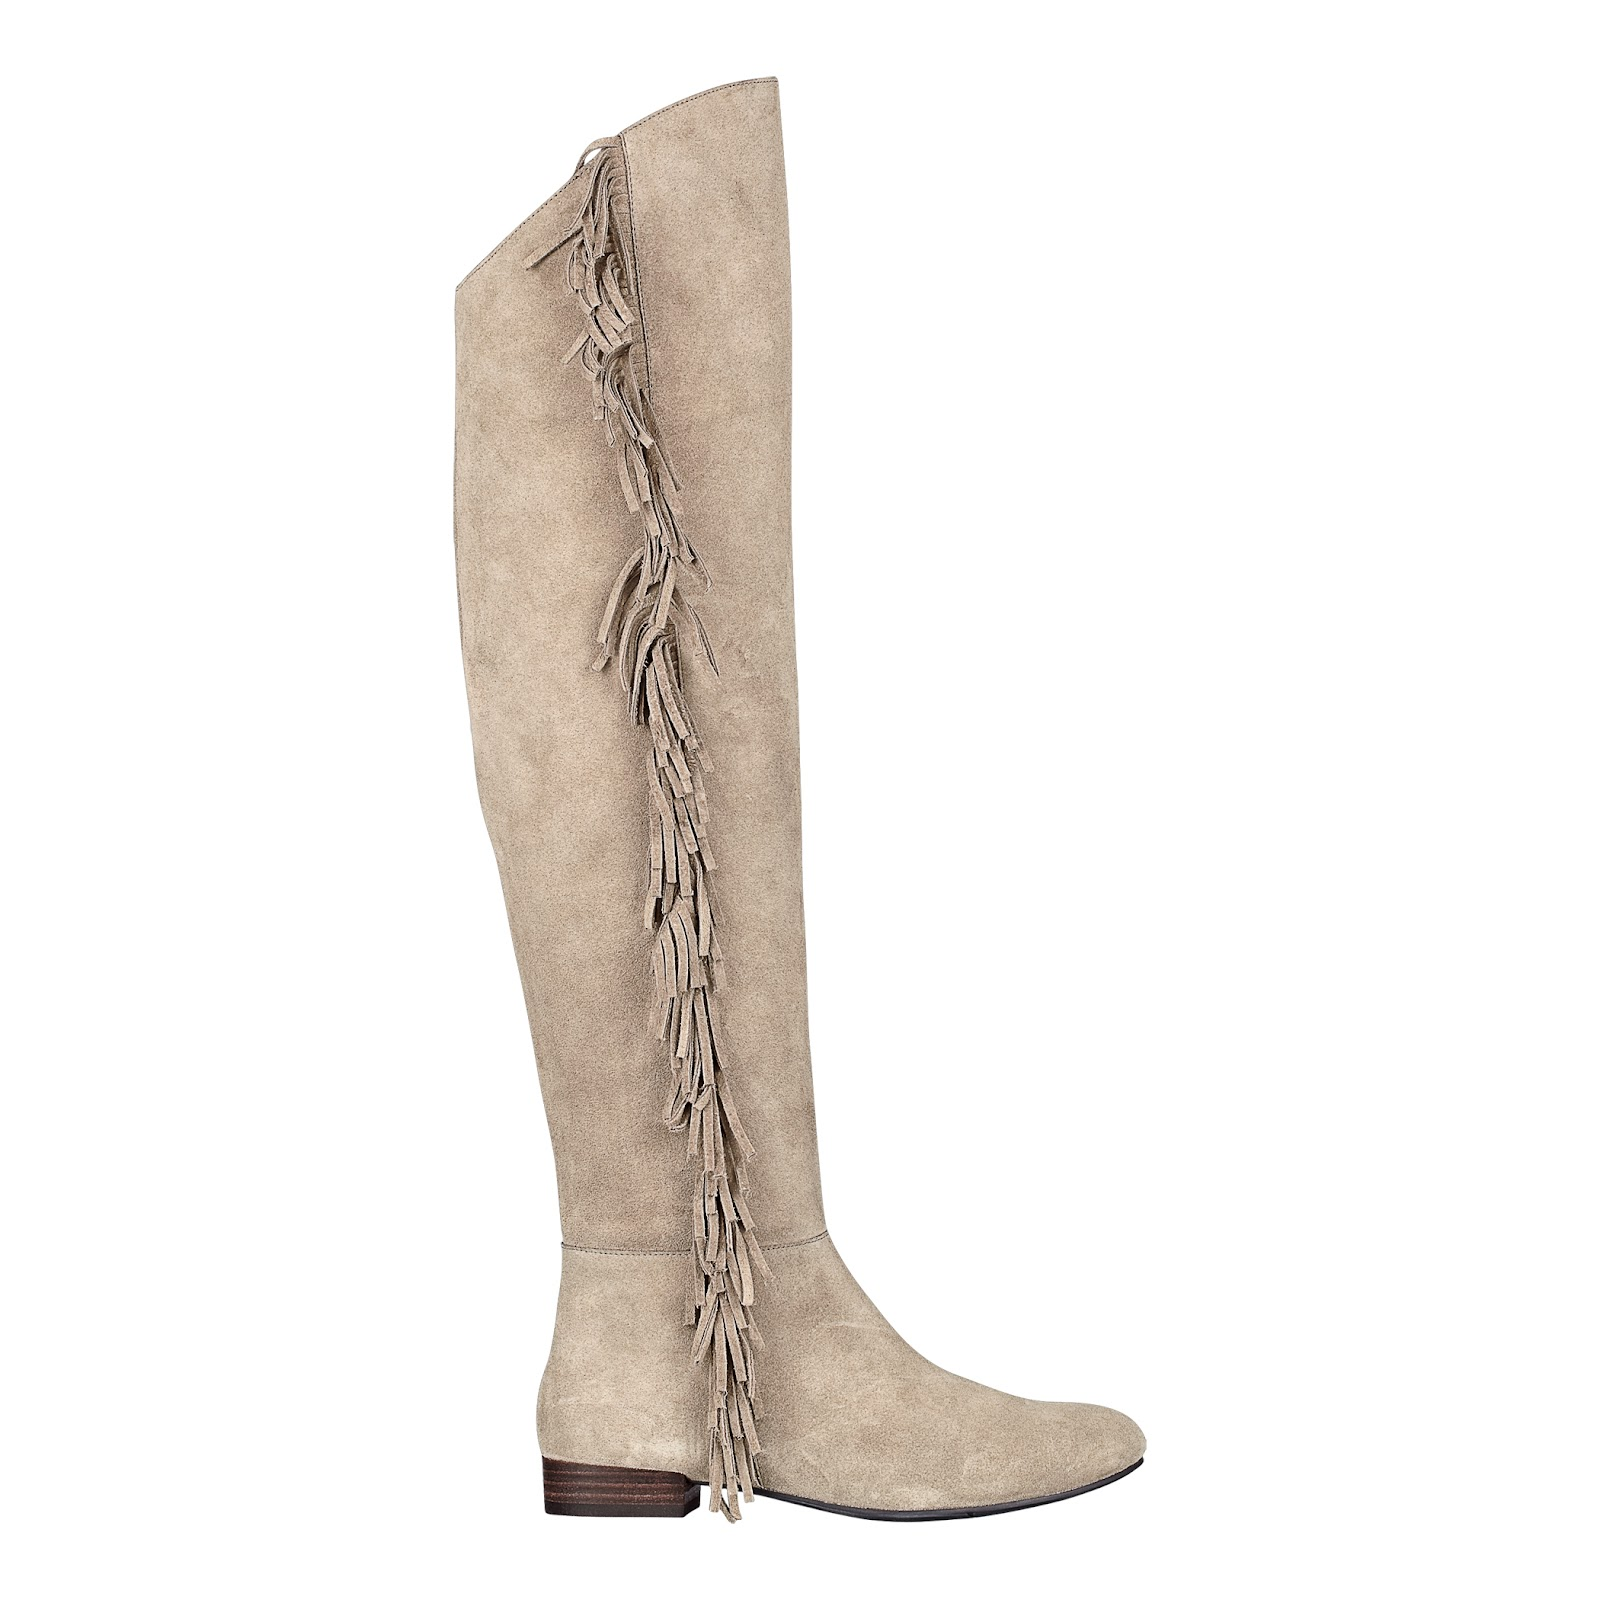 boot nation knee high boot fashion month nine west boots